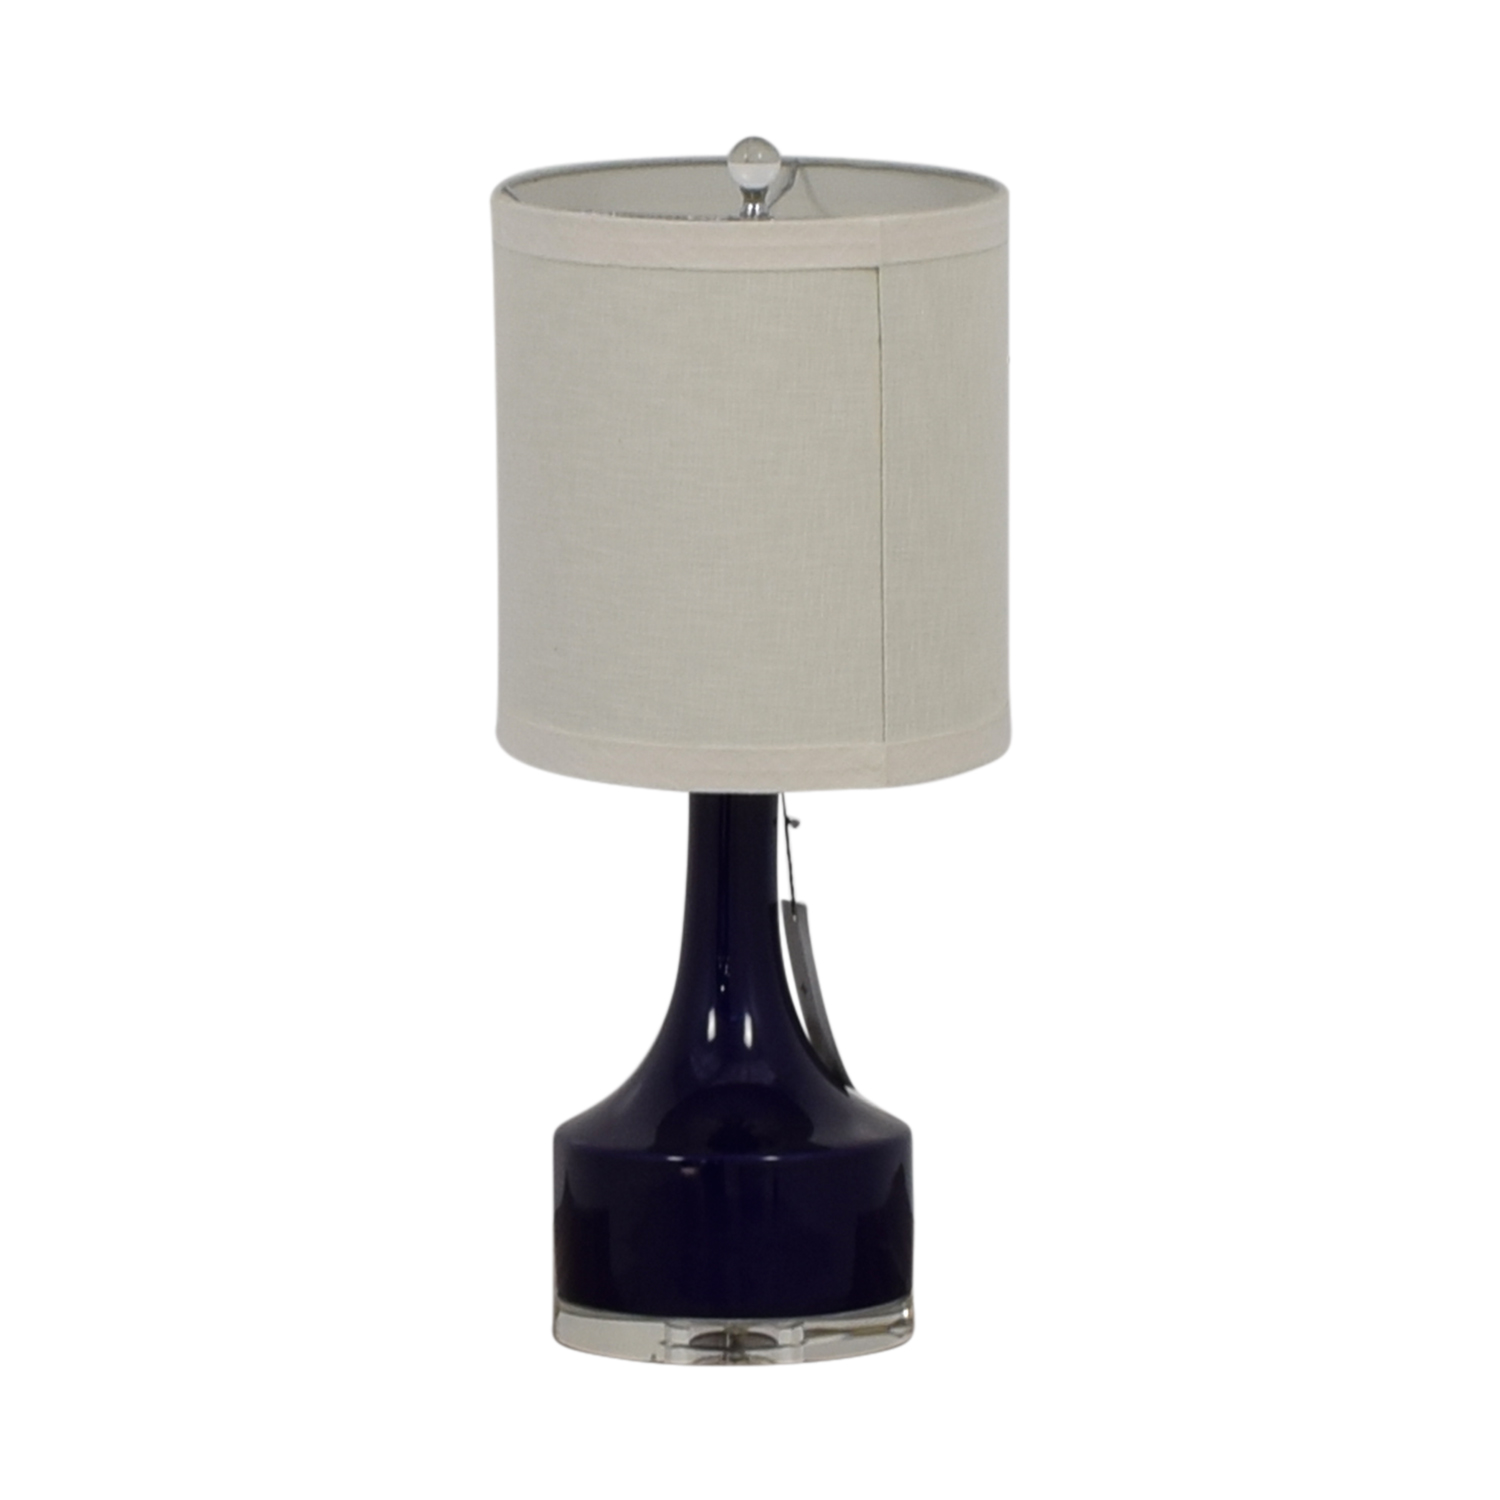 Couture Lamps & Home Furnishings Couture Holmby Table Lamp Decor